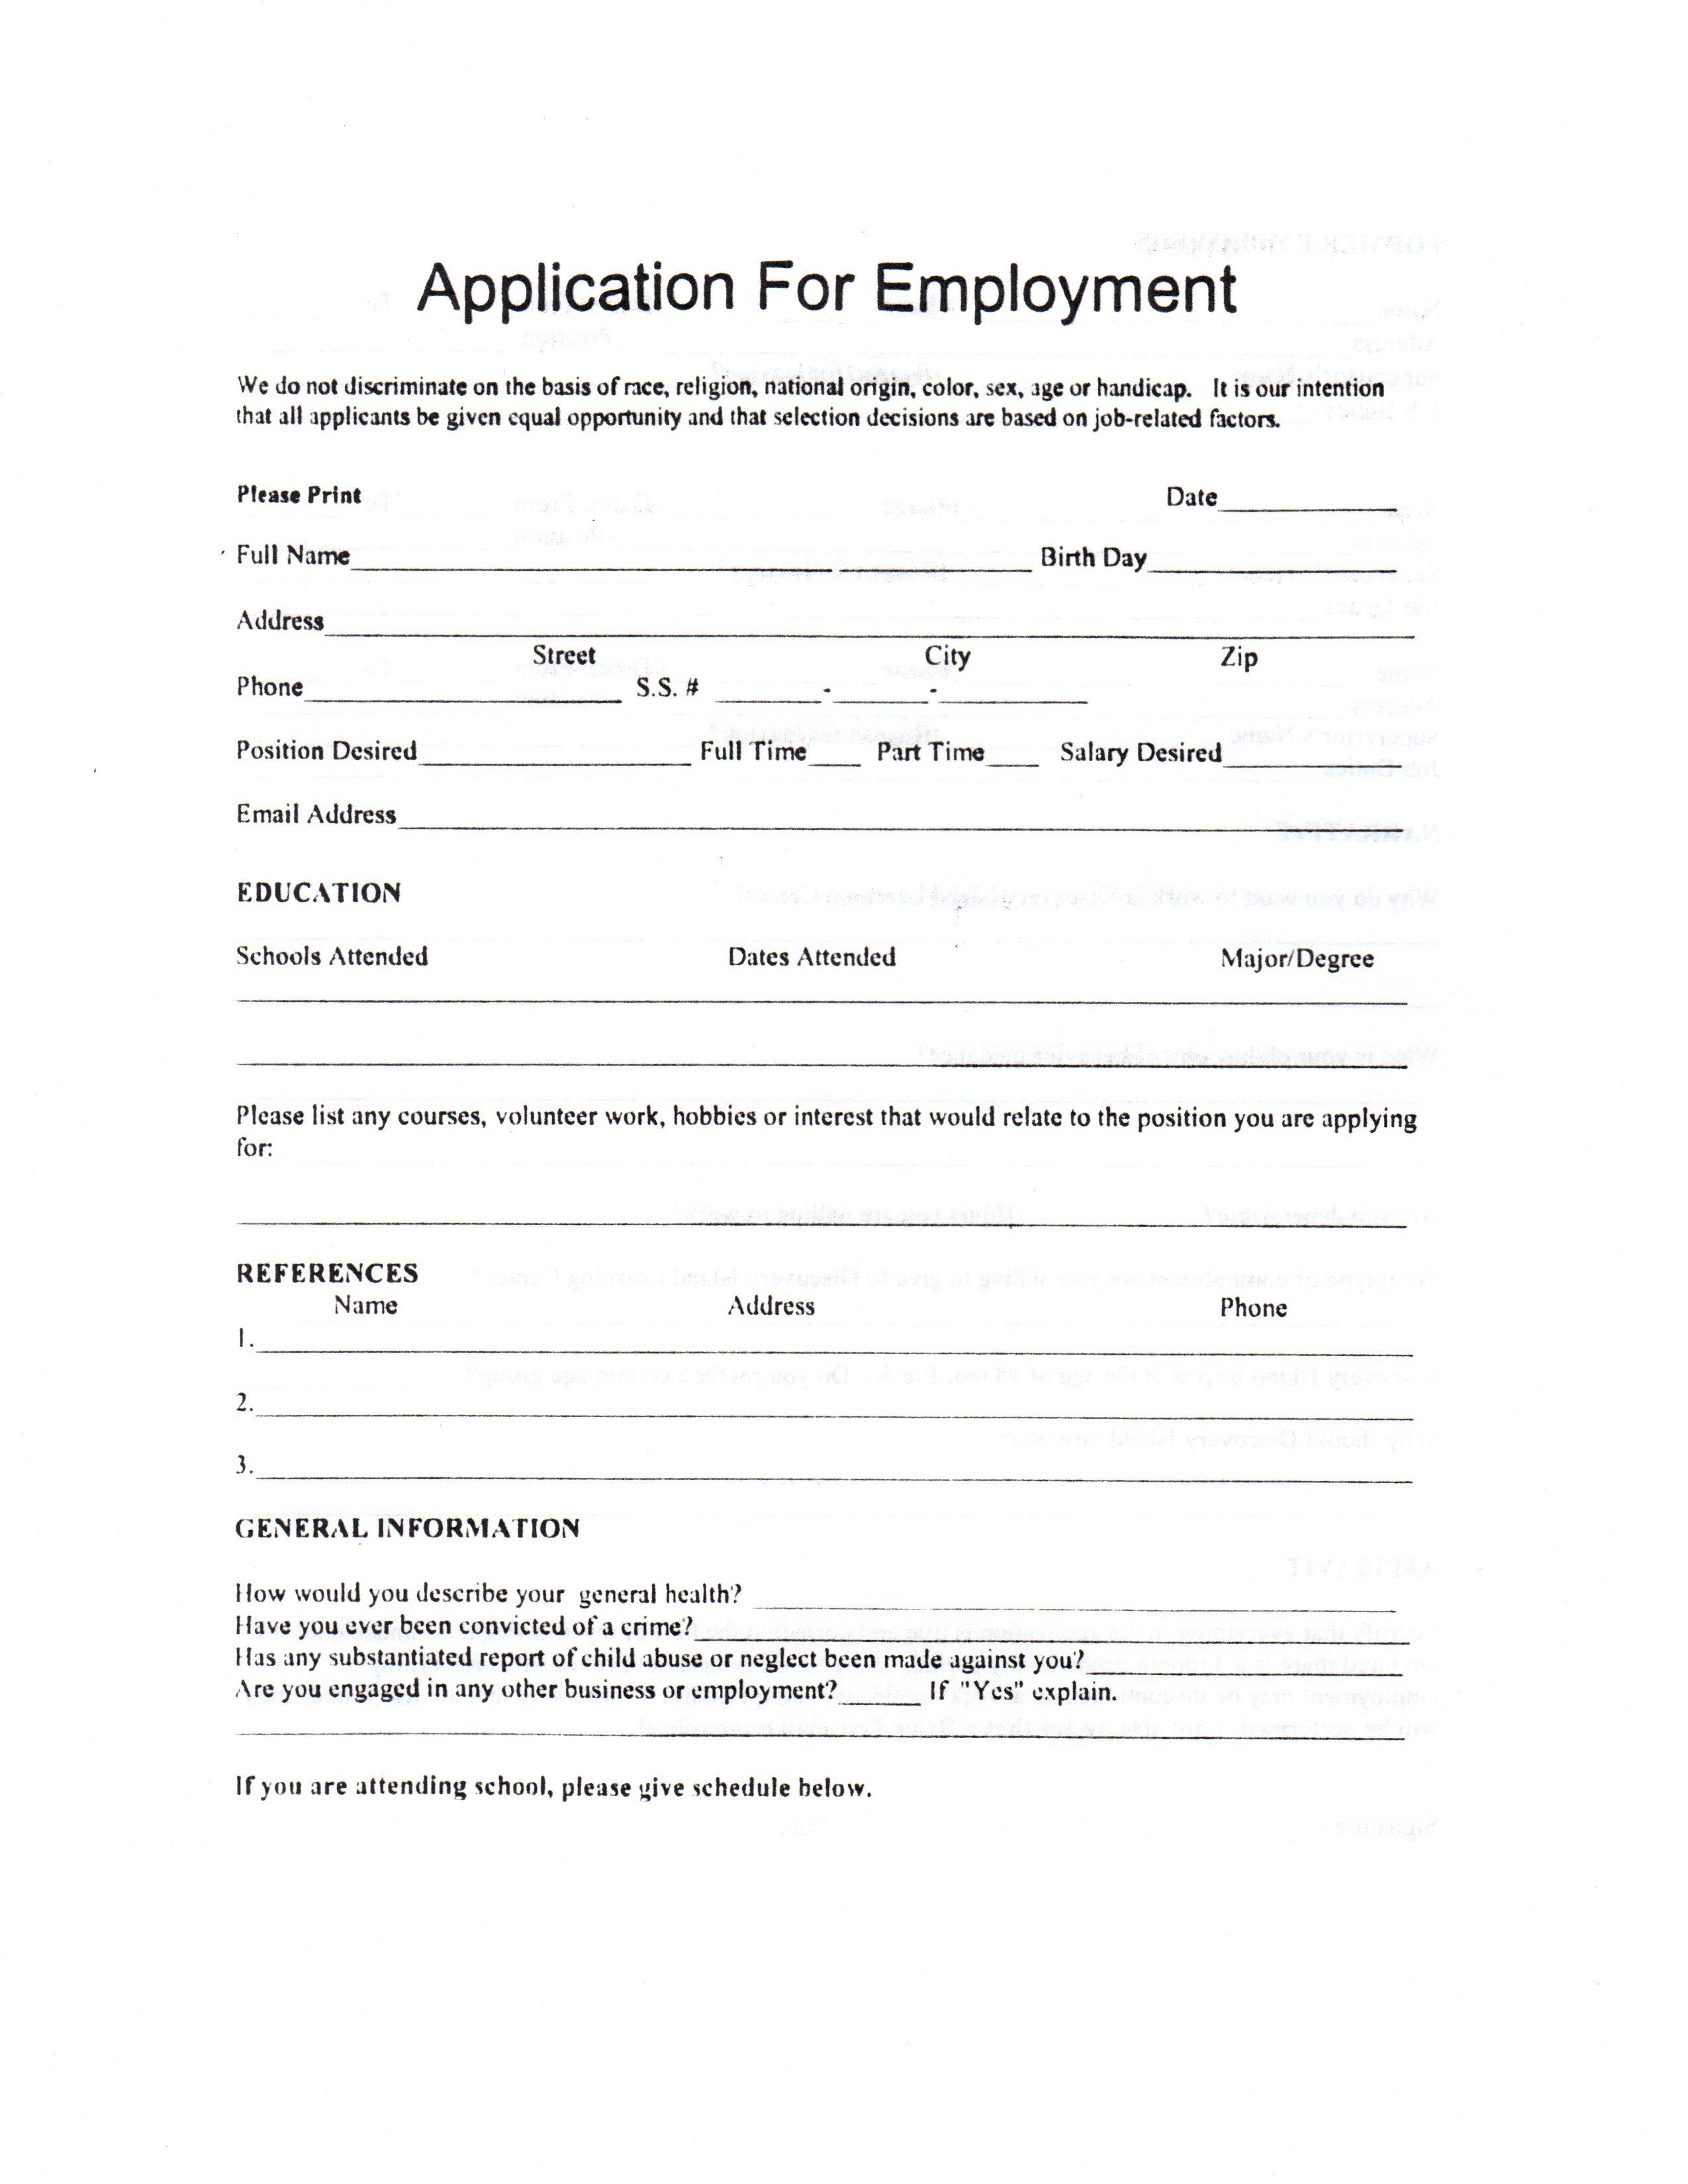 Child Care Employment Application Employment application